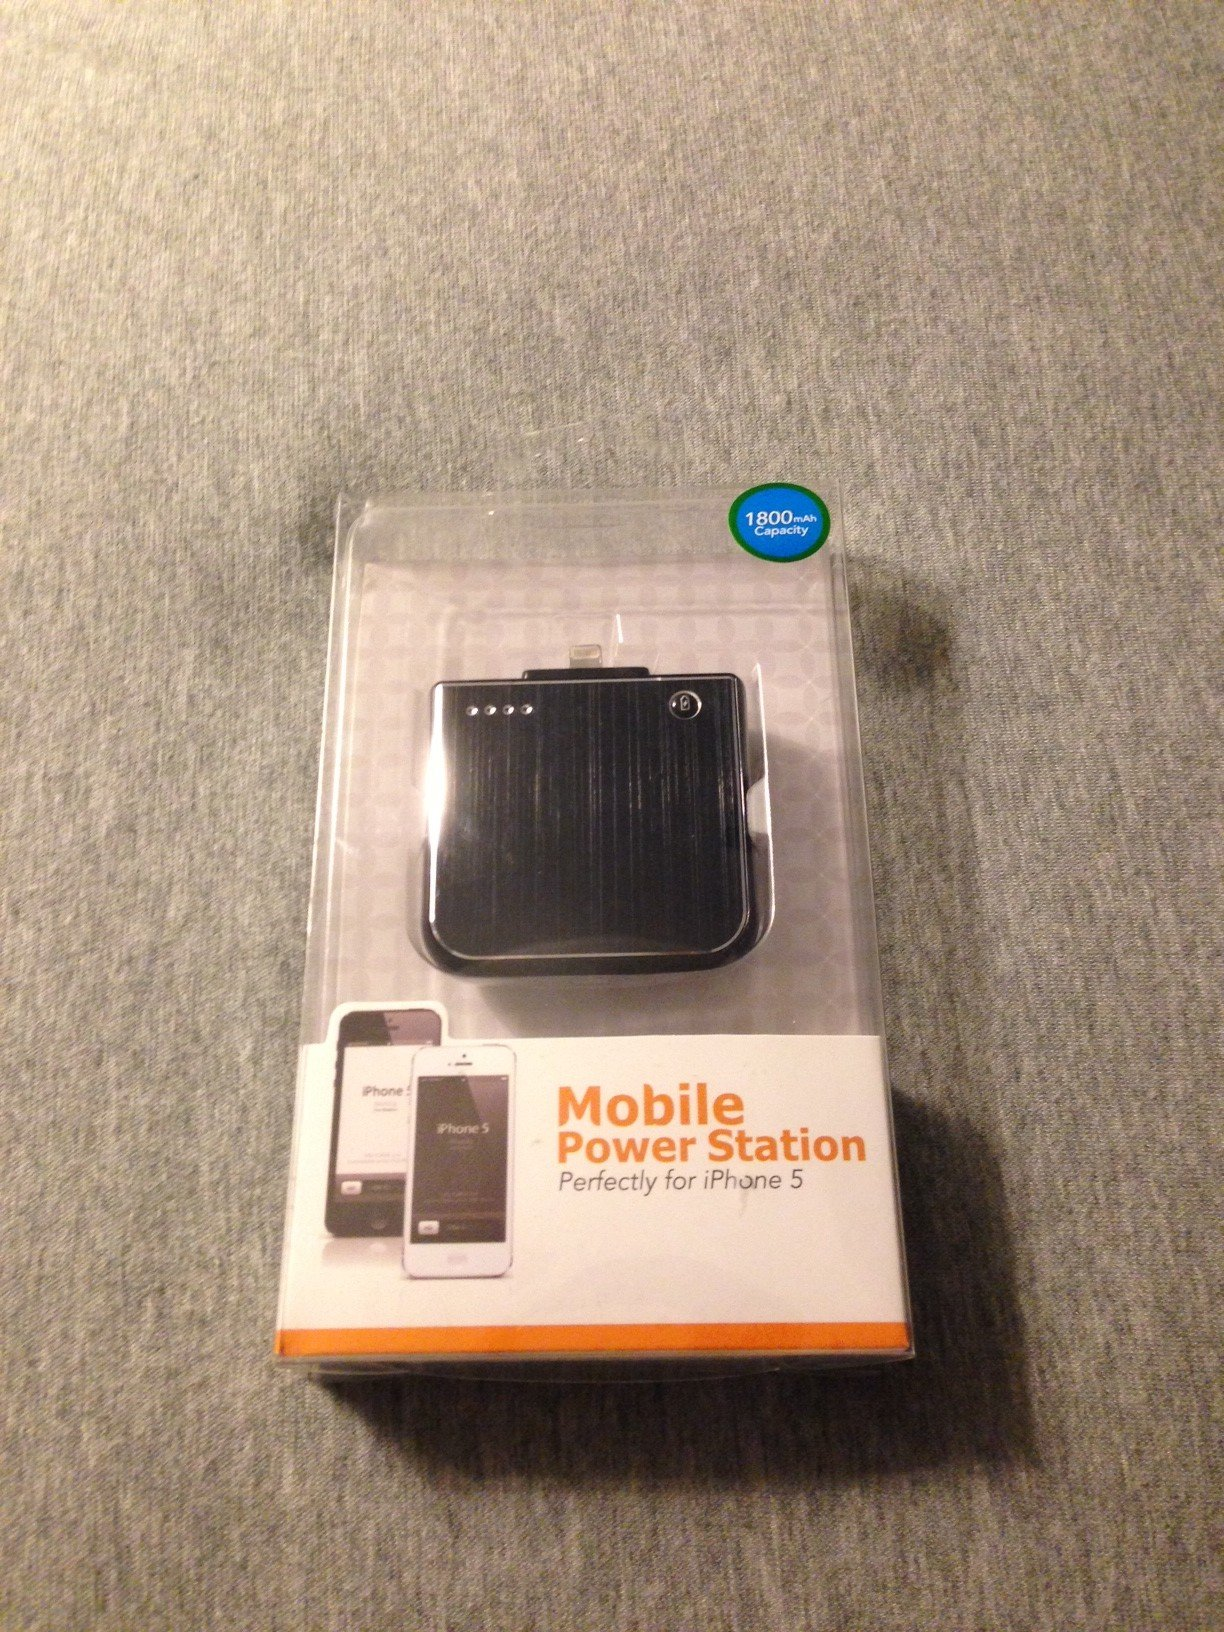 mobile-power-station